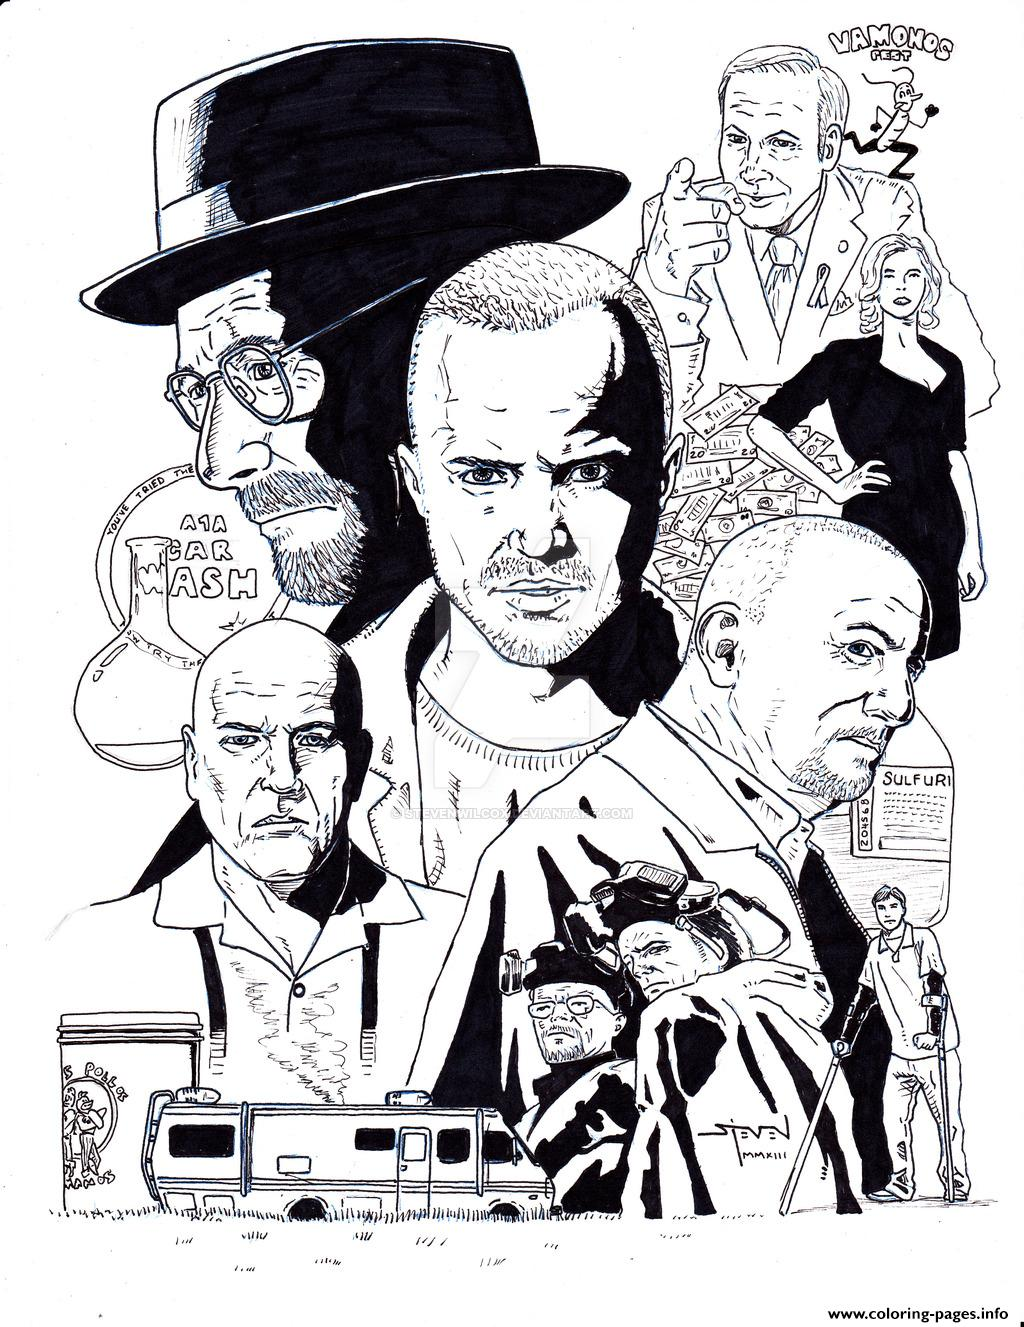 Breaking Bad Montage By Stevenwilcox coloring pages